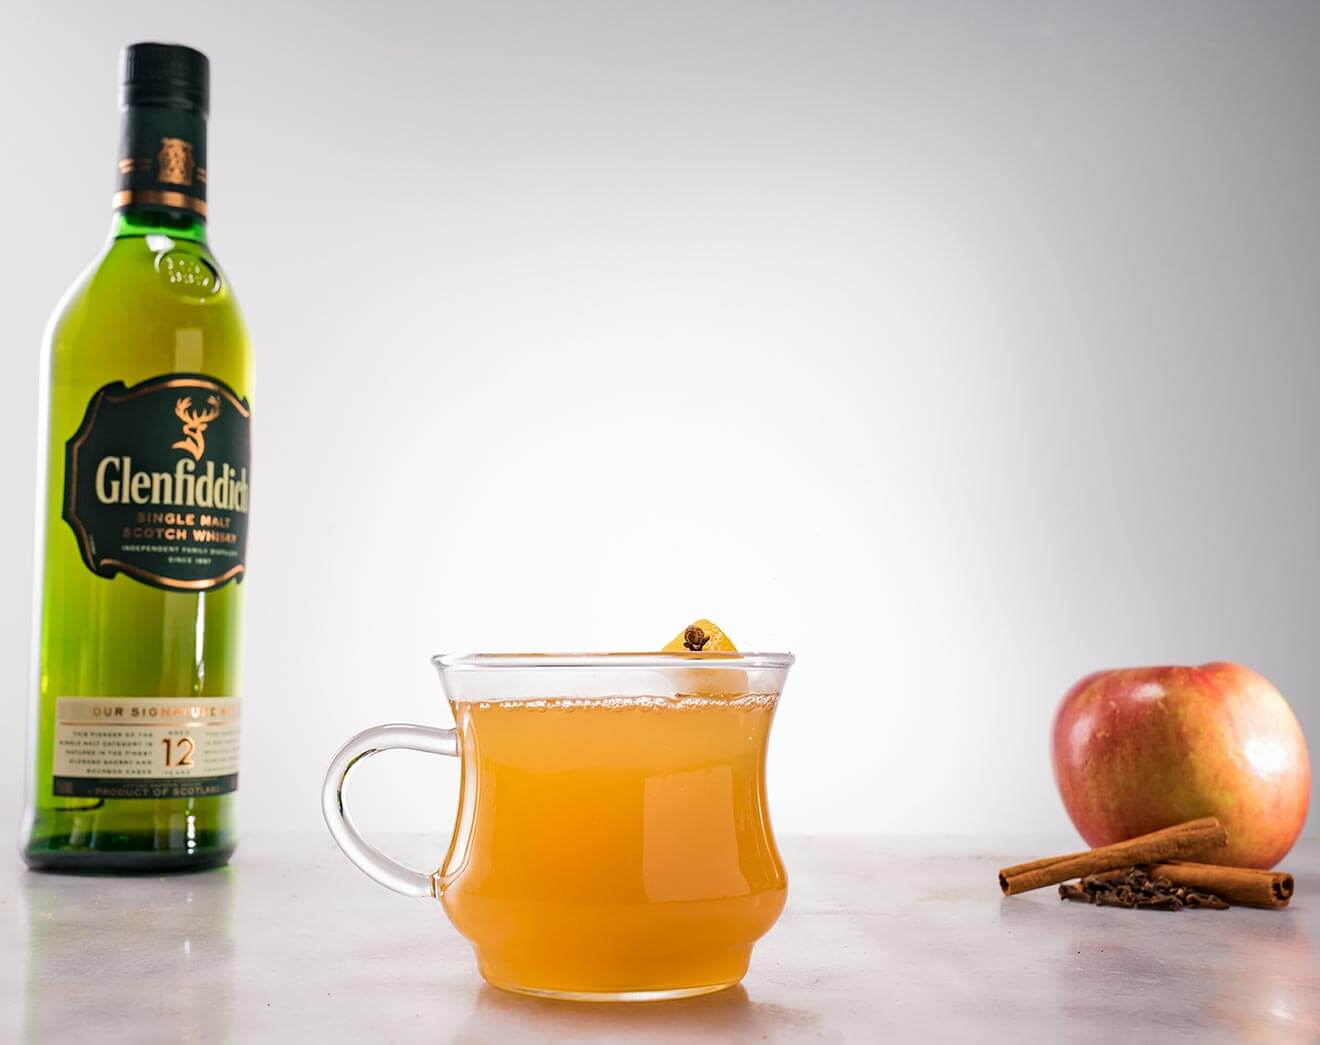 The Glenfiddich Toddy